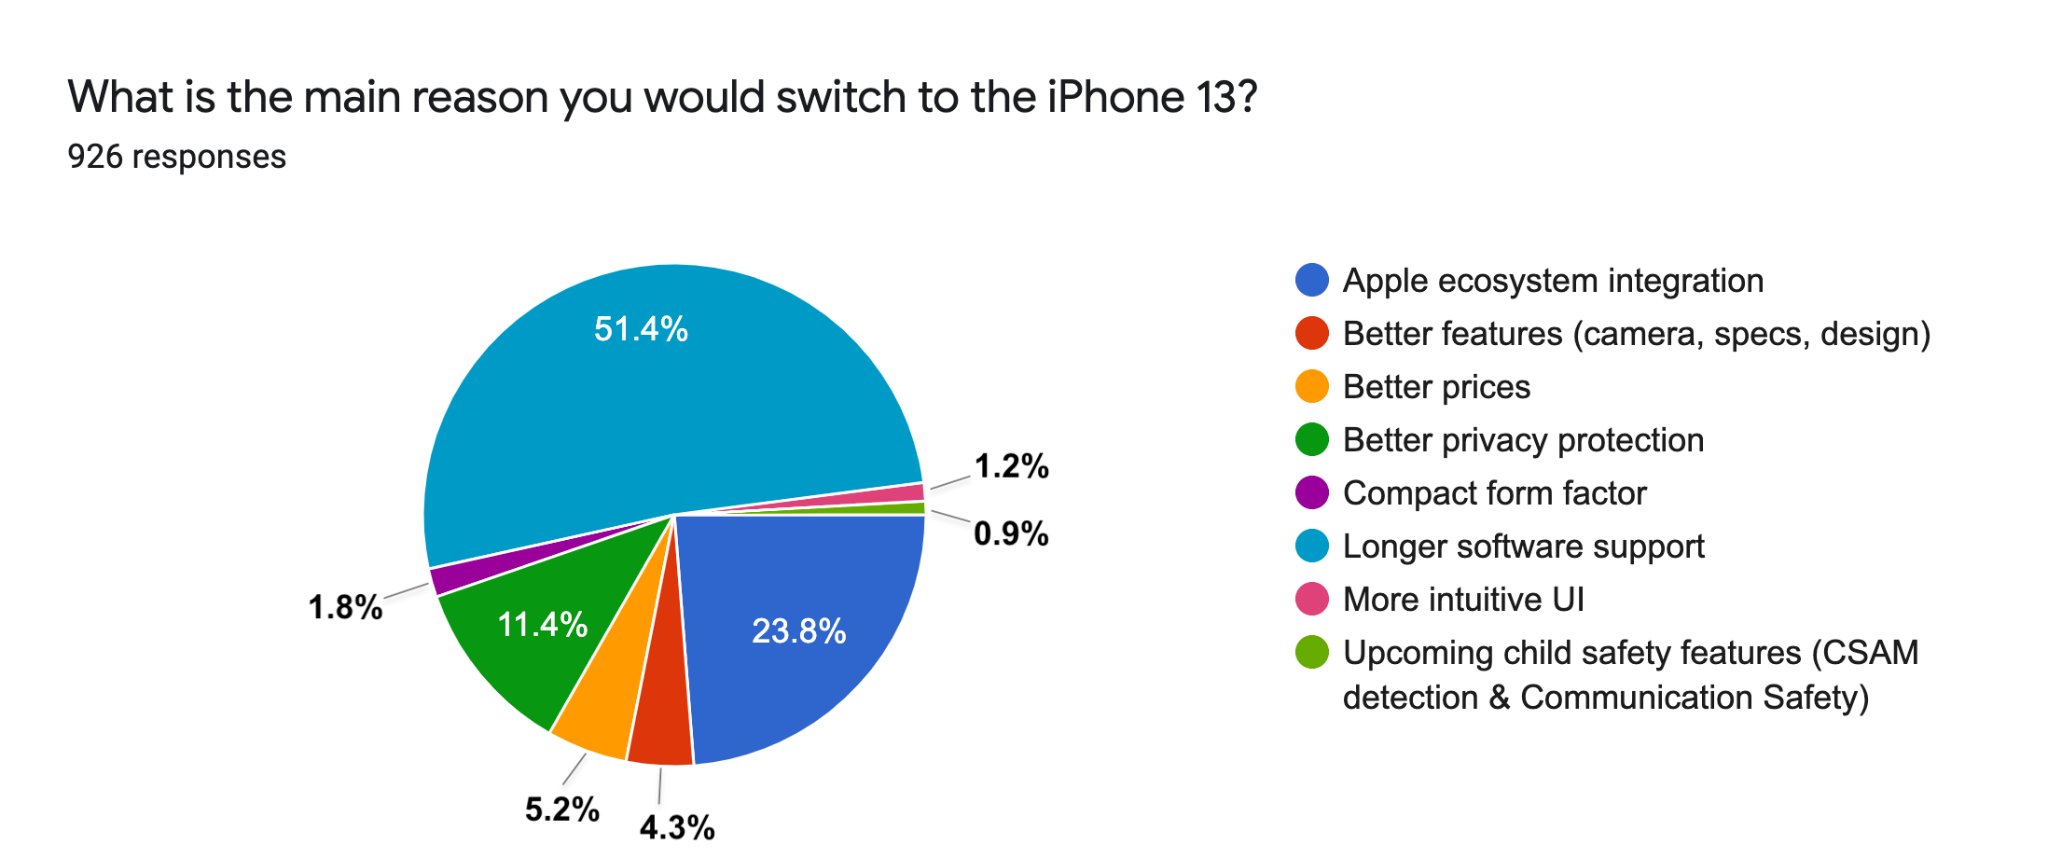 What is the main reason you would switch to an iPhone 13?